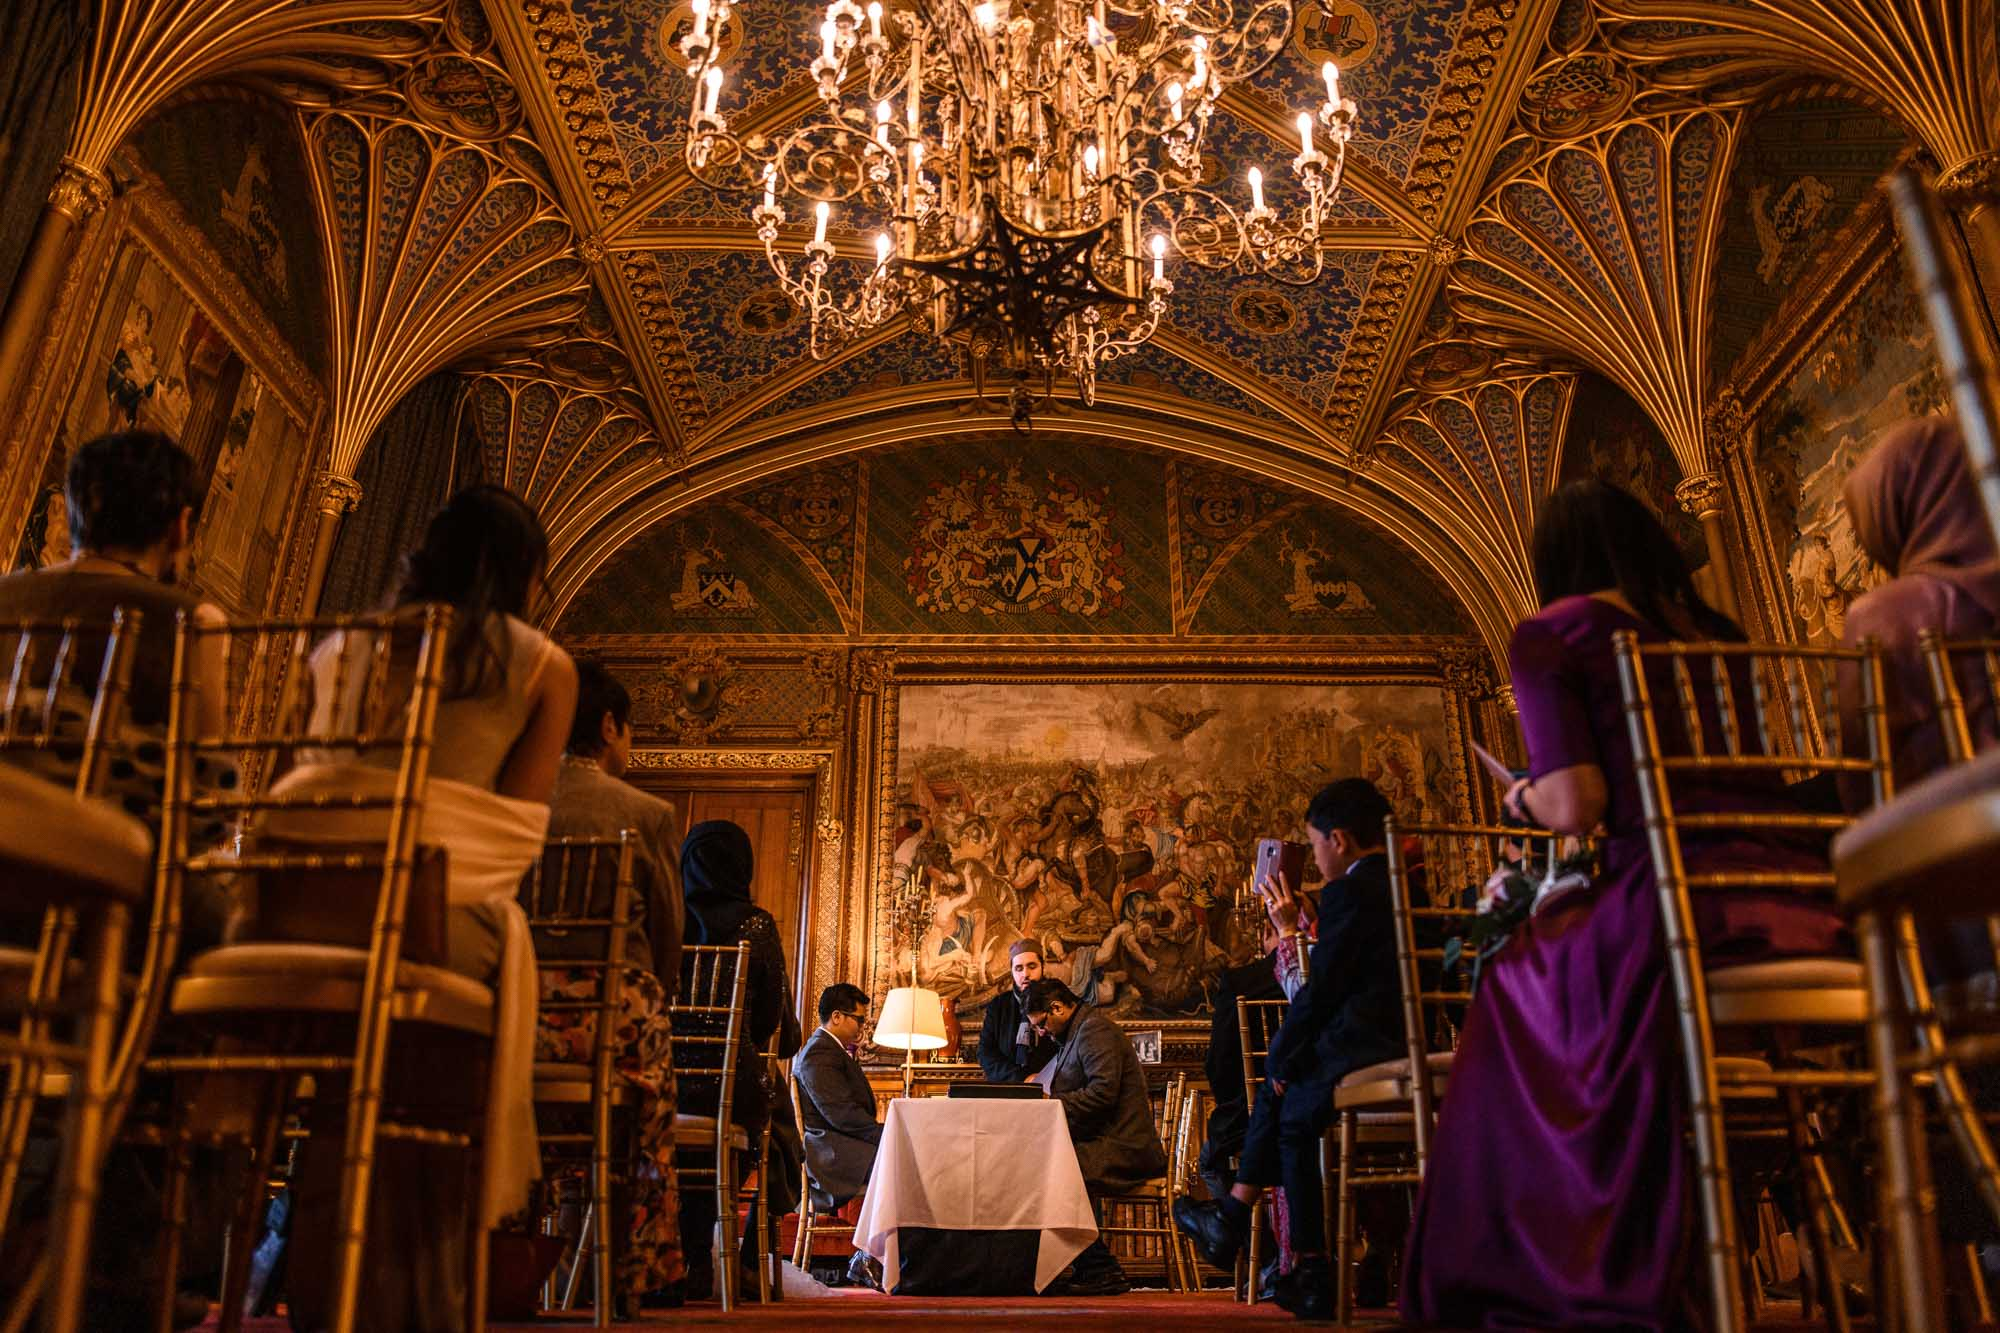 Eastnor Castle Wedding Photography, Wedding Photography at EAstnor Castle, Eastnor Castle in Herefordshire, Herefordshire Wedding Photographer, Eastnor Castle Wedding Blog